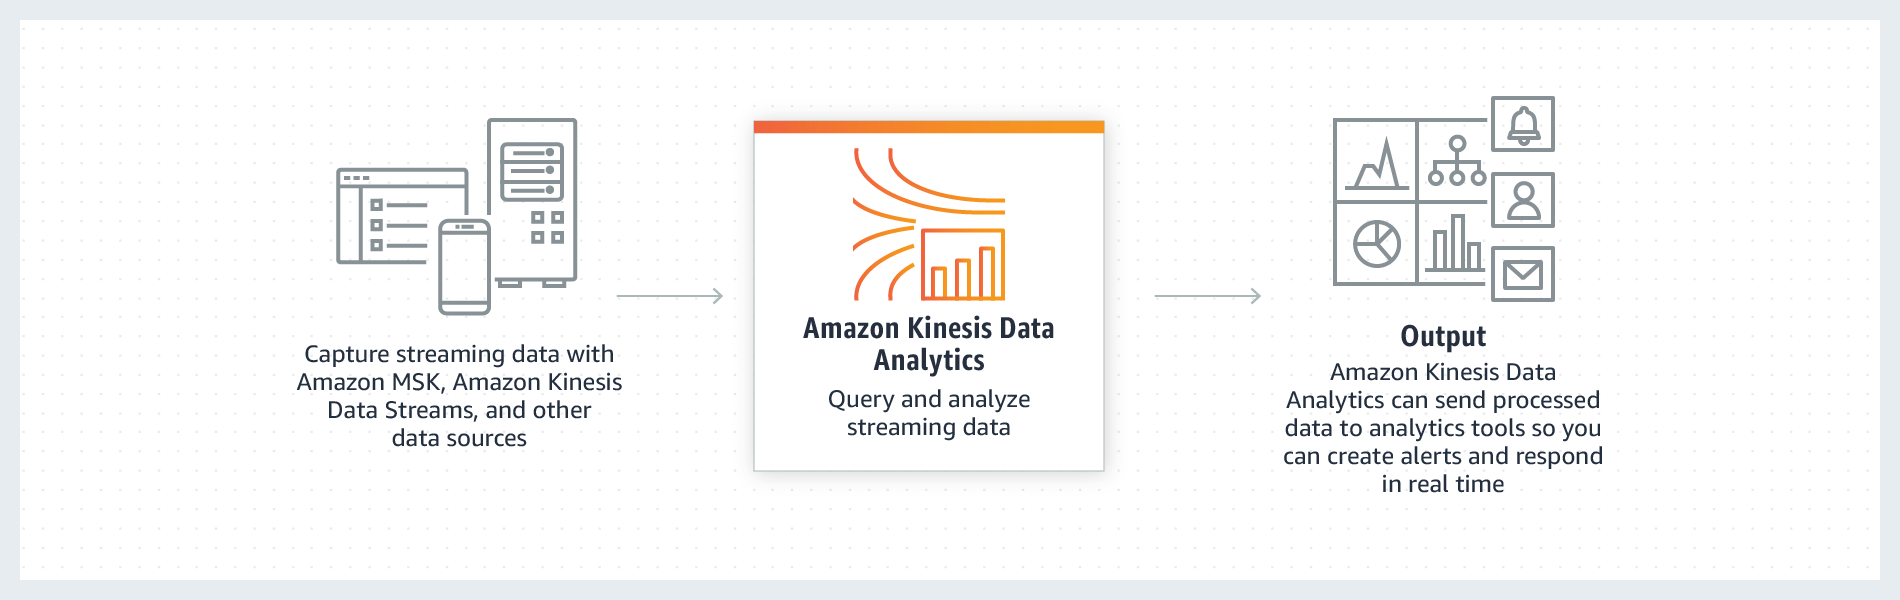 Funktionsweise von Amazon Kinesis Data Analytics